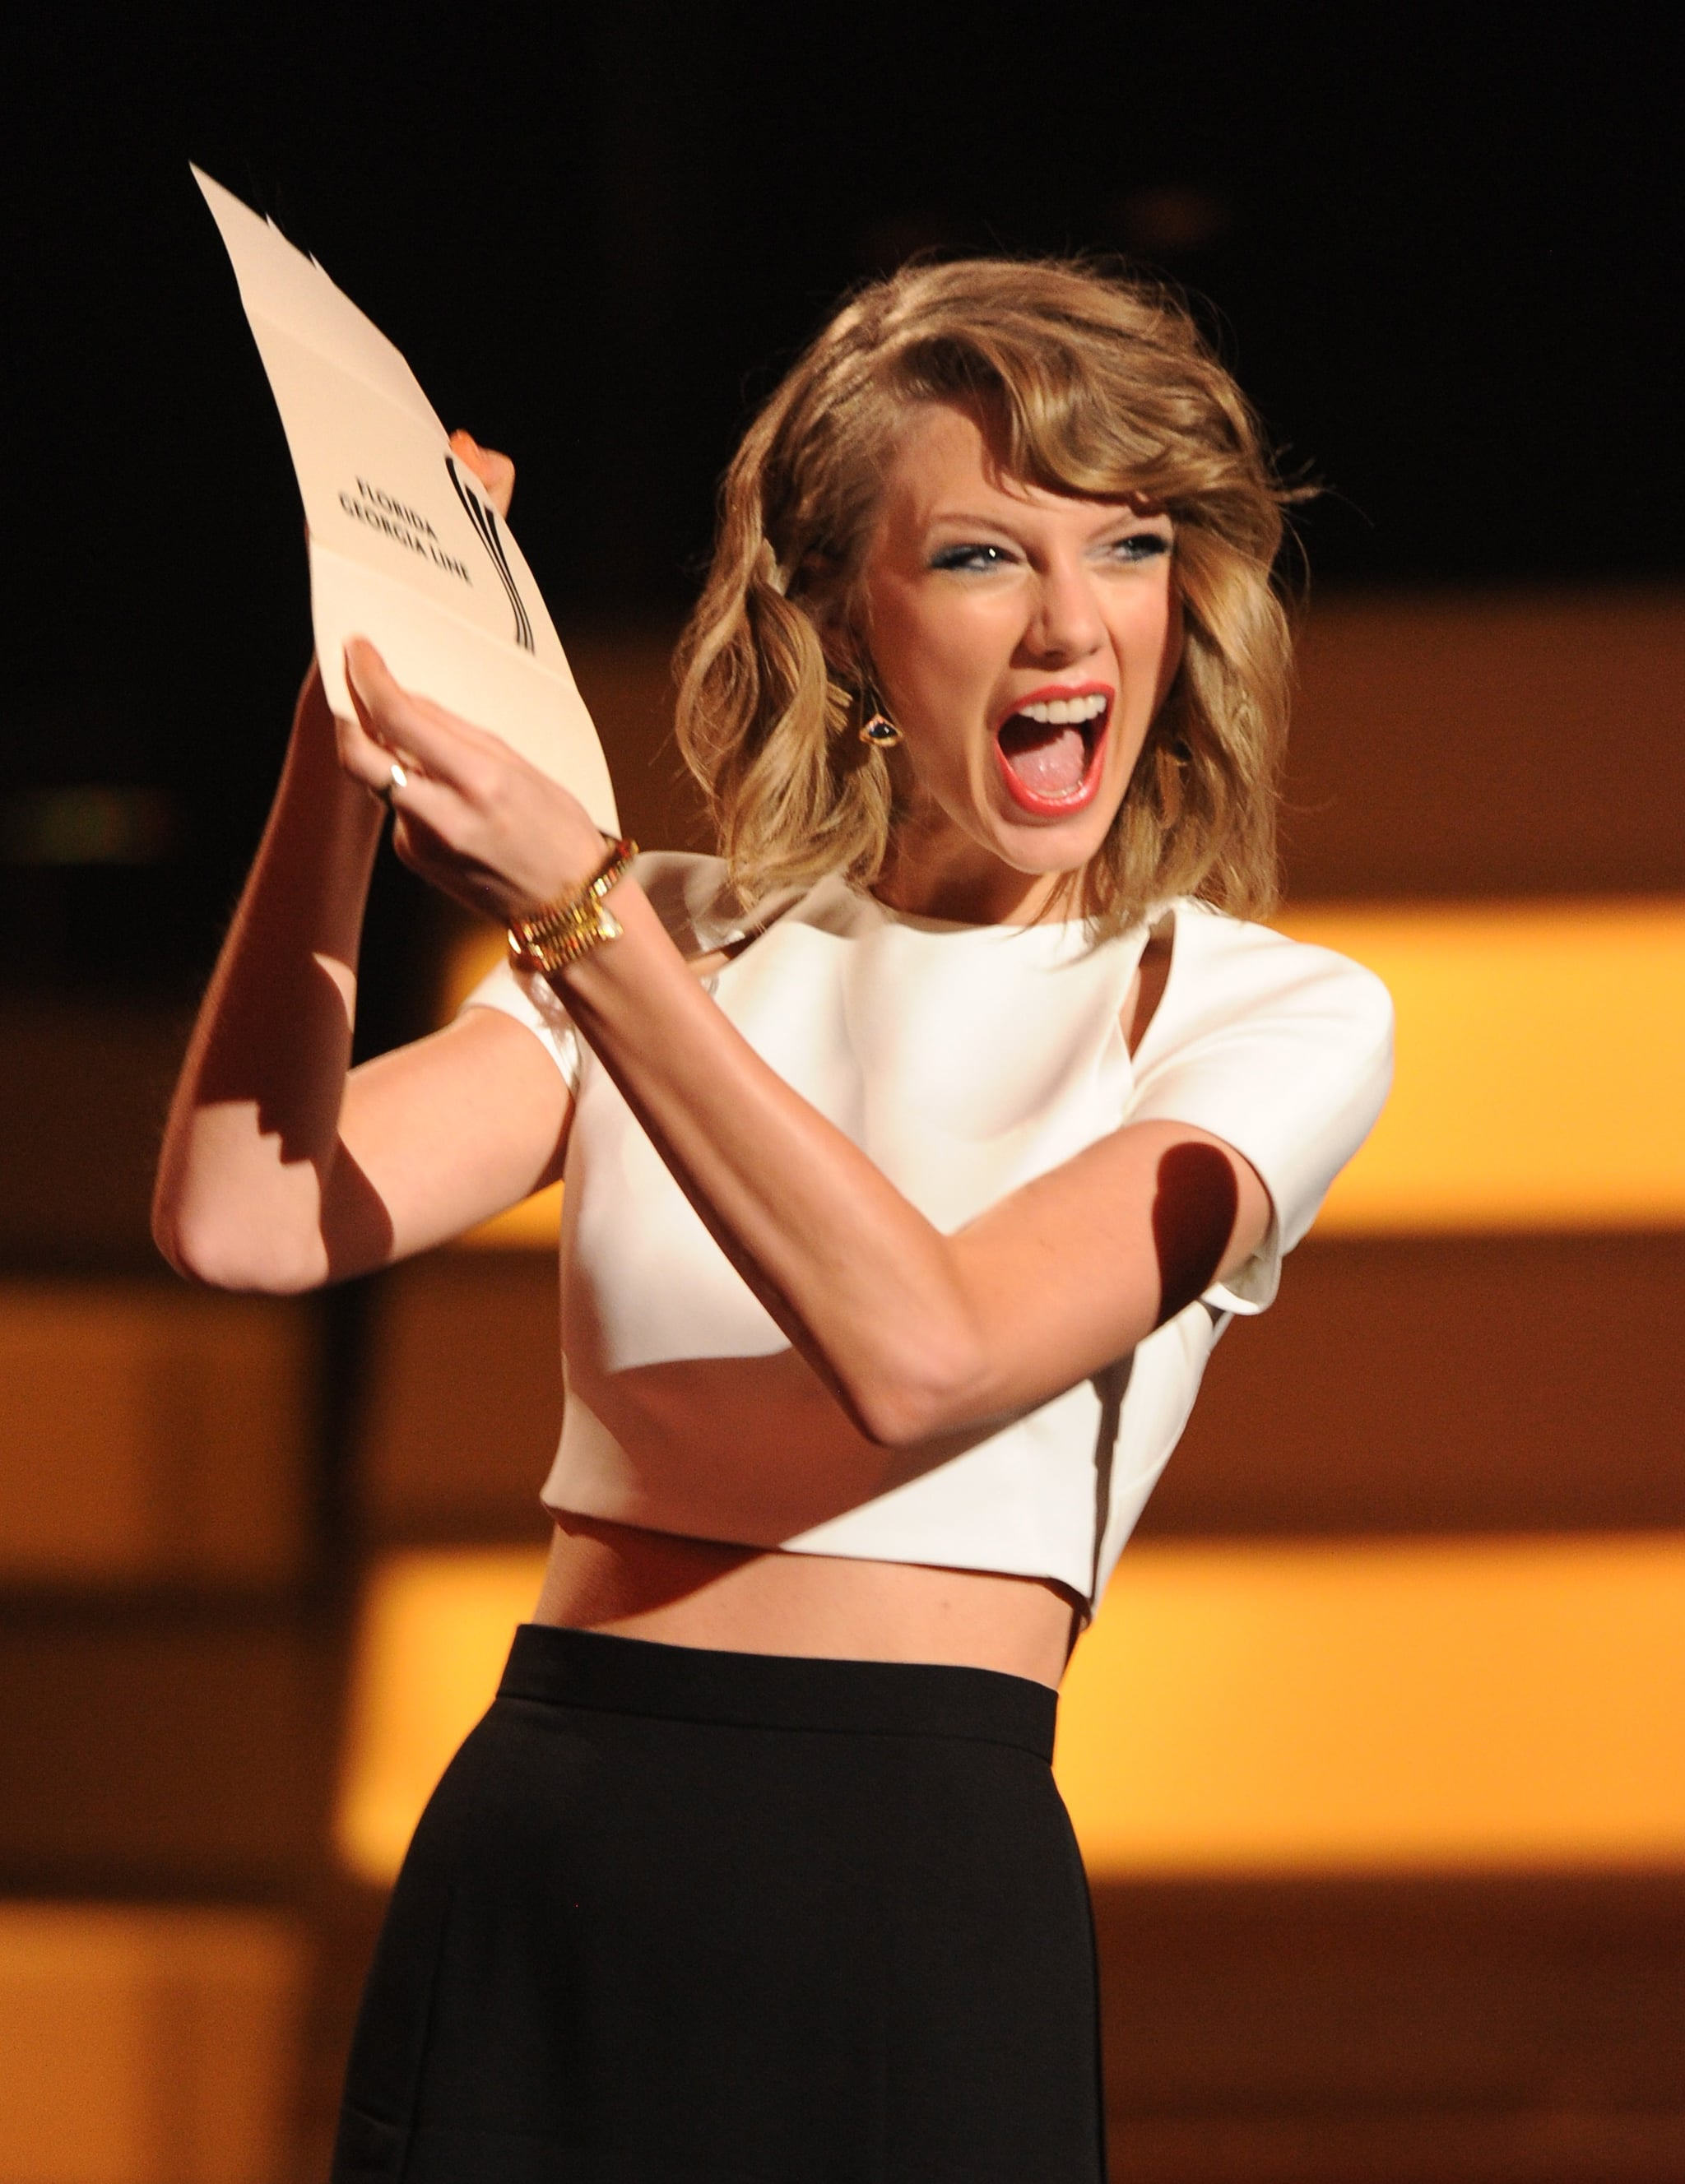 Taylor Swift brought her enthusiasm — and bare midriff! — to the Academy of Country Music Awards in Las Vegas.